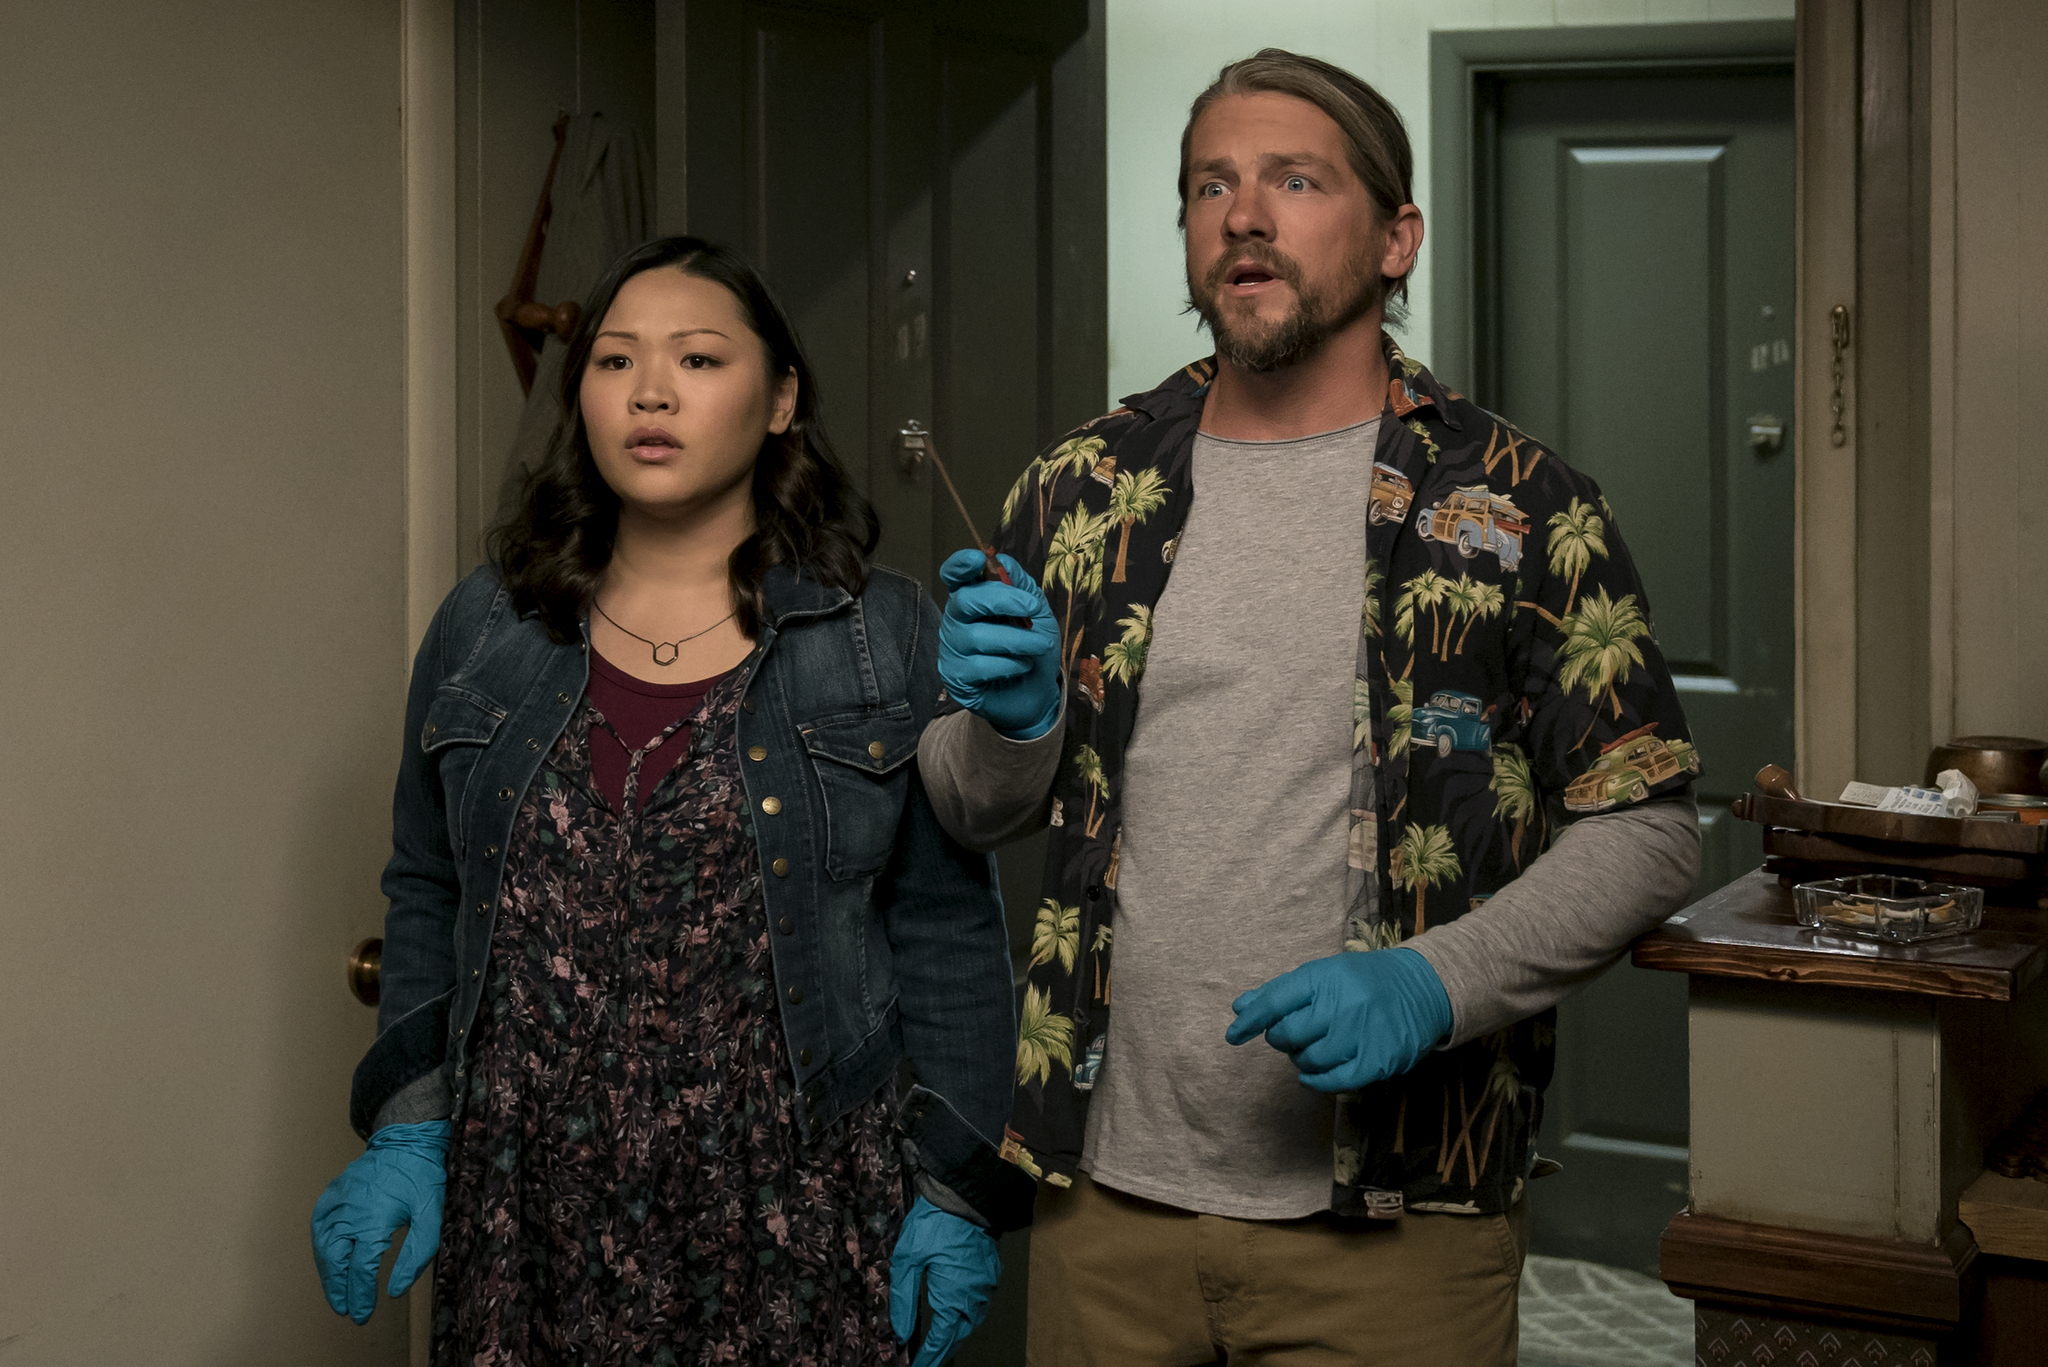 Zachary Knighton and Jee Young Han in Santa Clarita Diet (2017)